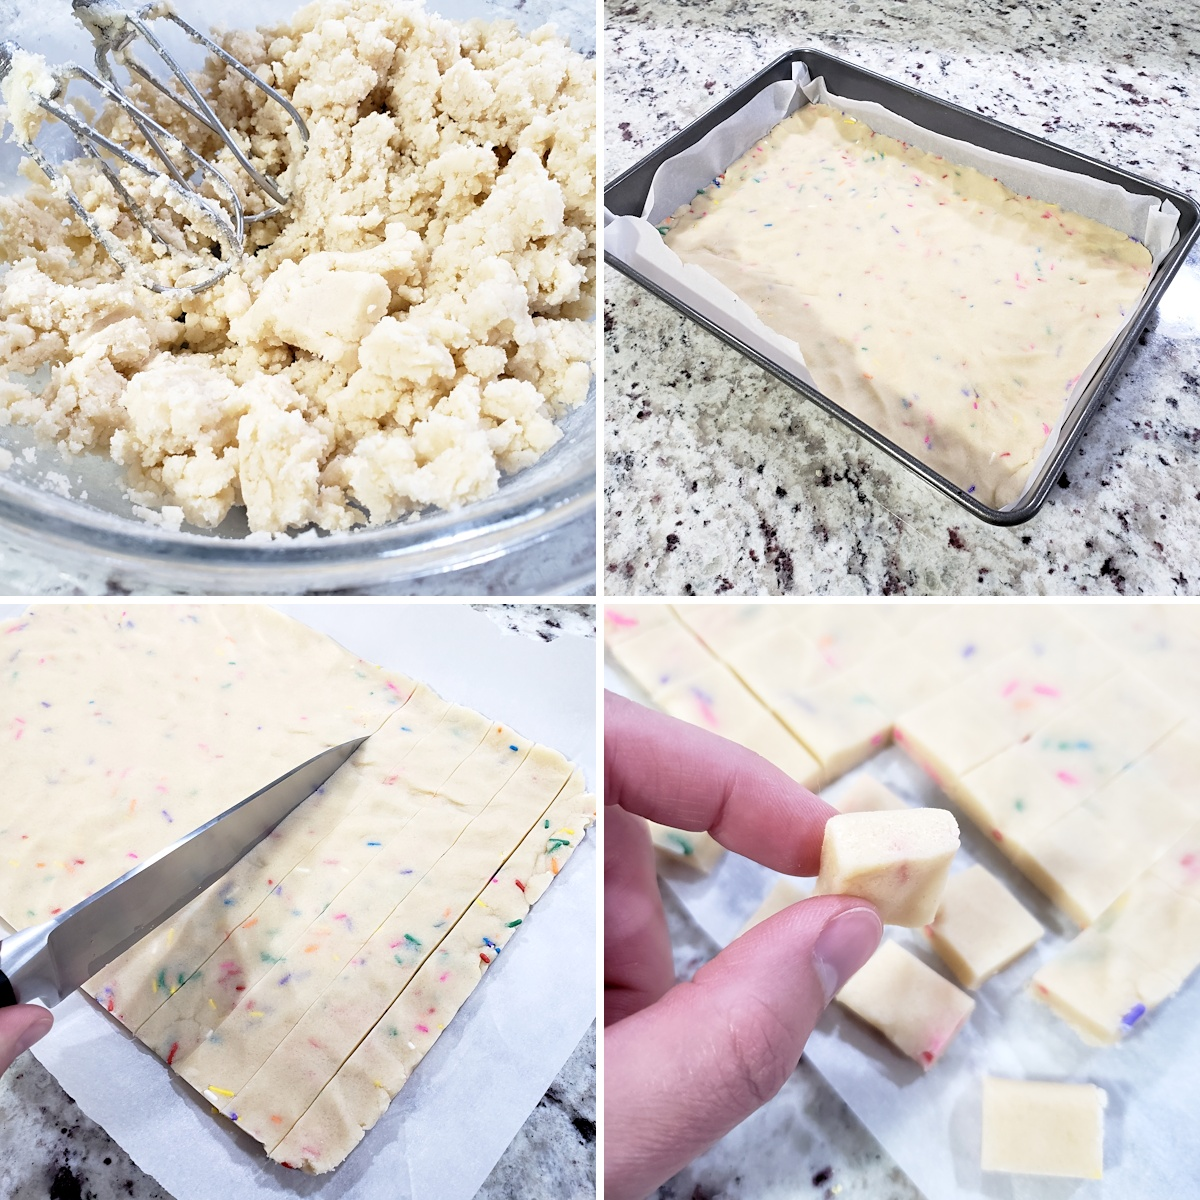 Shortbread cookie dough pressed into a pan, then being sliced into squares.